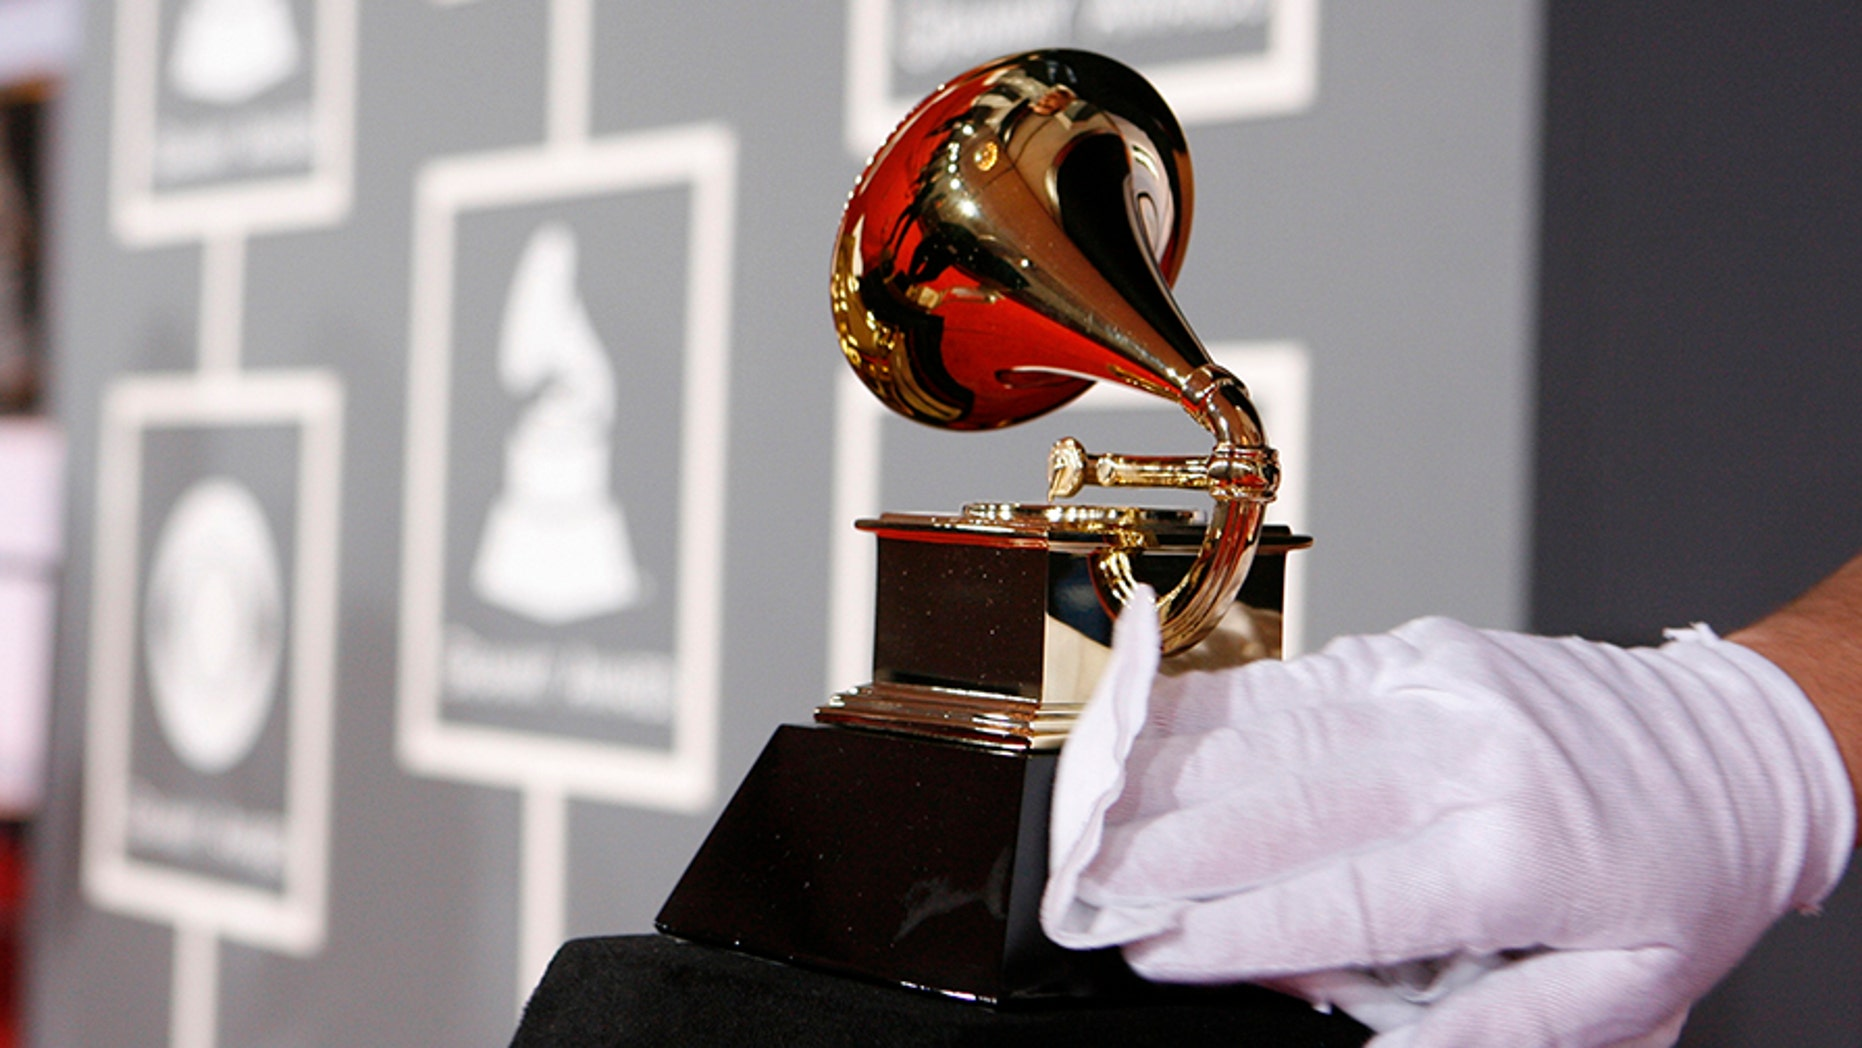 A white-gloved worker polishes a Grammy Award before the 51st annual Grammy Awards in Los Angeles February 8, 2009.